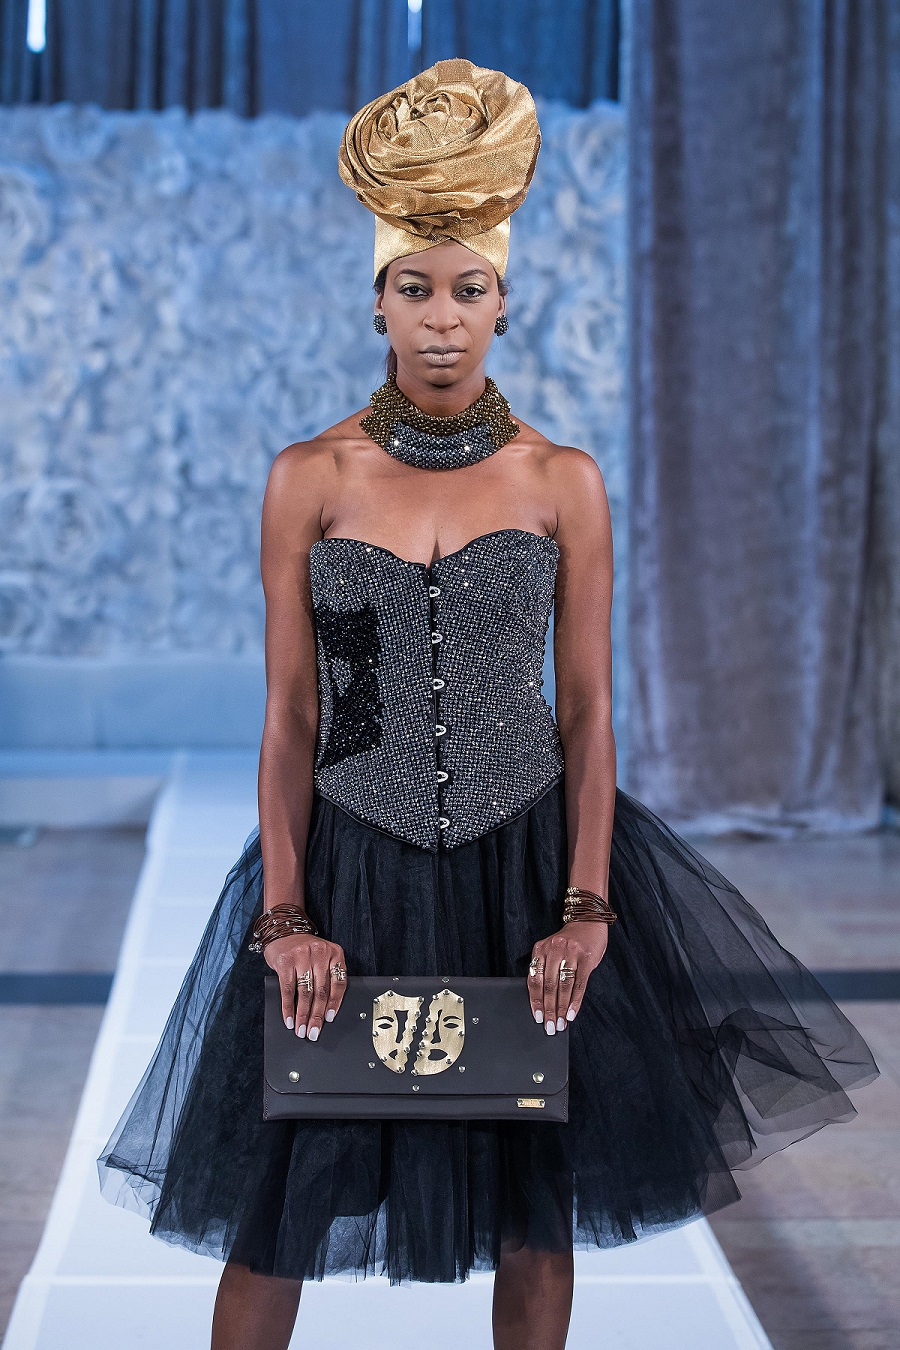 zuri-perle-at-kansas-city-fashion-week-model-12-wearing-handcrafted-african-inspired-accessories-made-in-dallas-texas.jpg